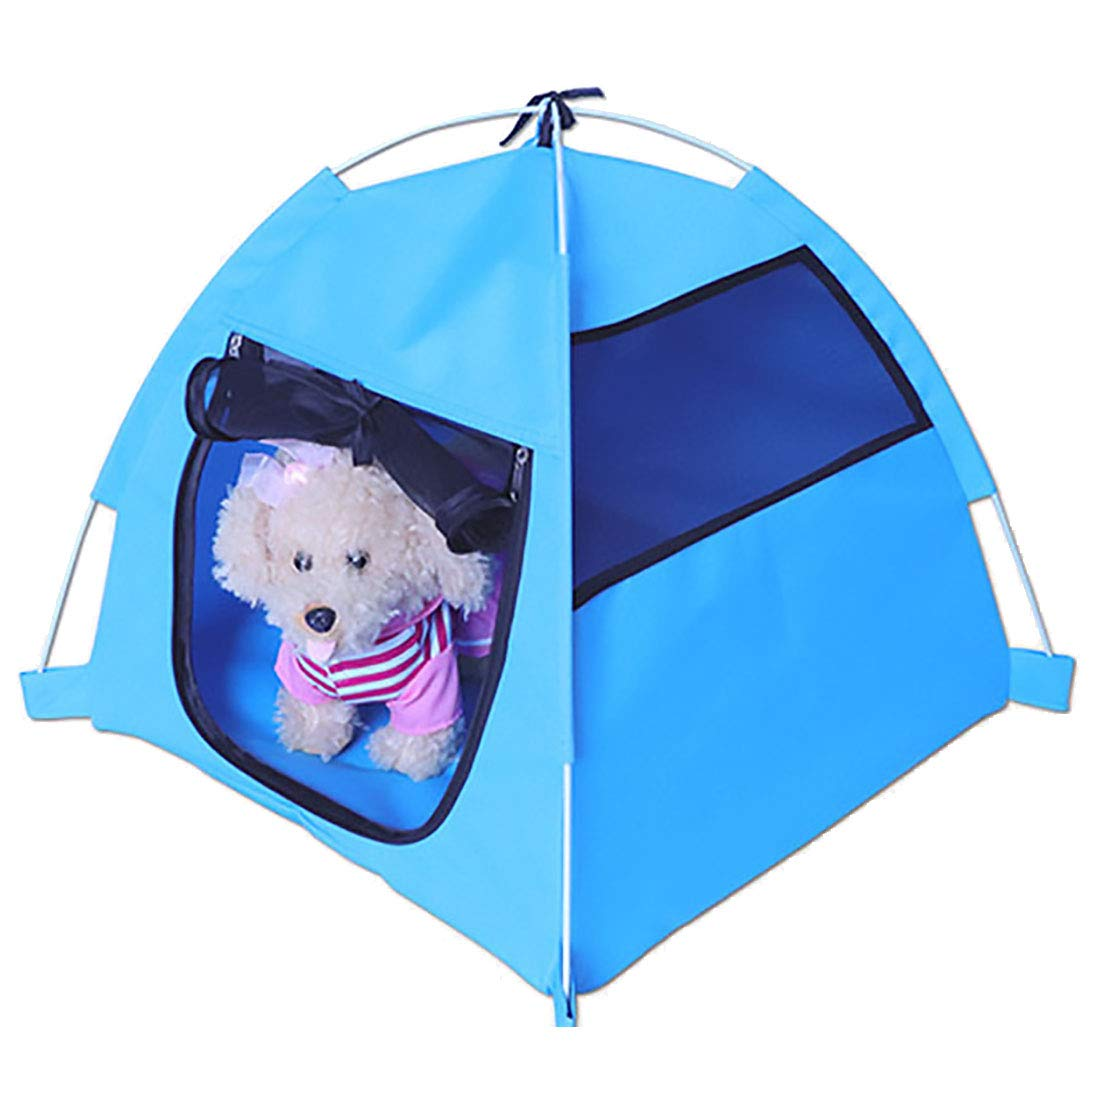 A Outdoor Dog Kennel, Cat Dog House Foldable Puppy Cave Pet Tent House Puppy Cave Pet Sleeping Warm Bed Mat Outdoor Travel Nest Tent Extra Large Dog House,A